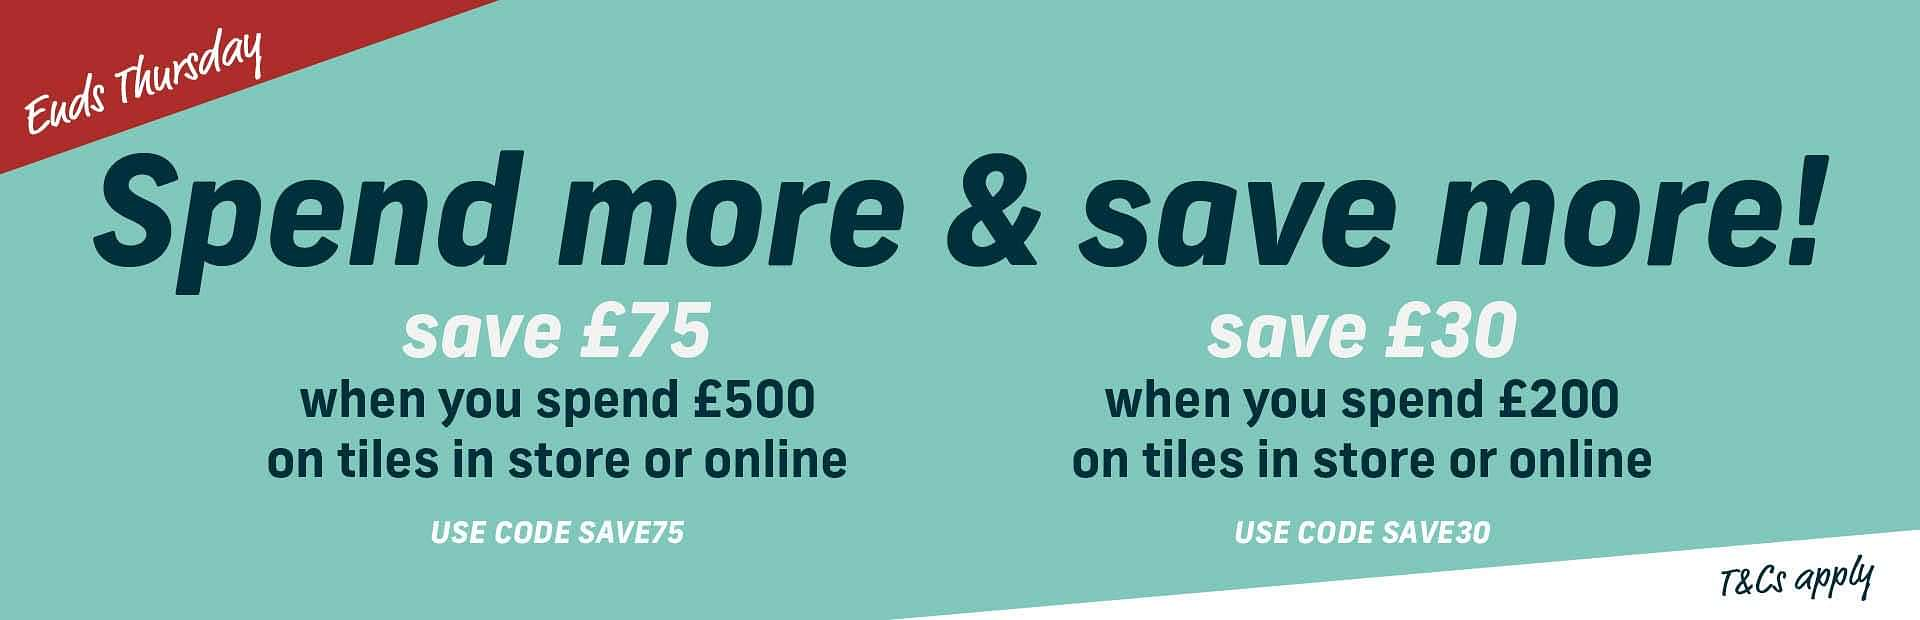 10% Off Tiles! 1 Day Flash Sale!